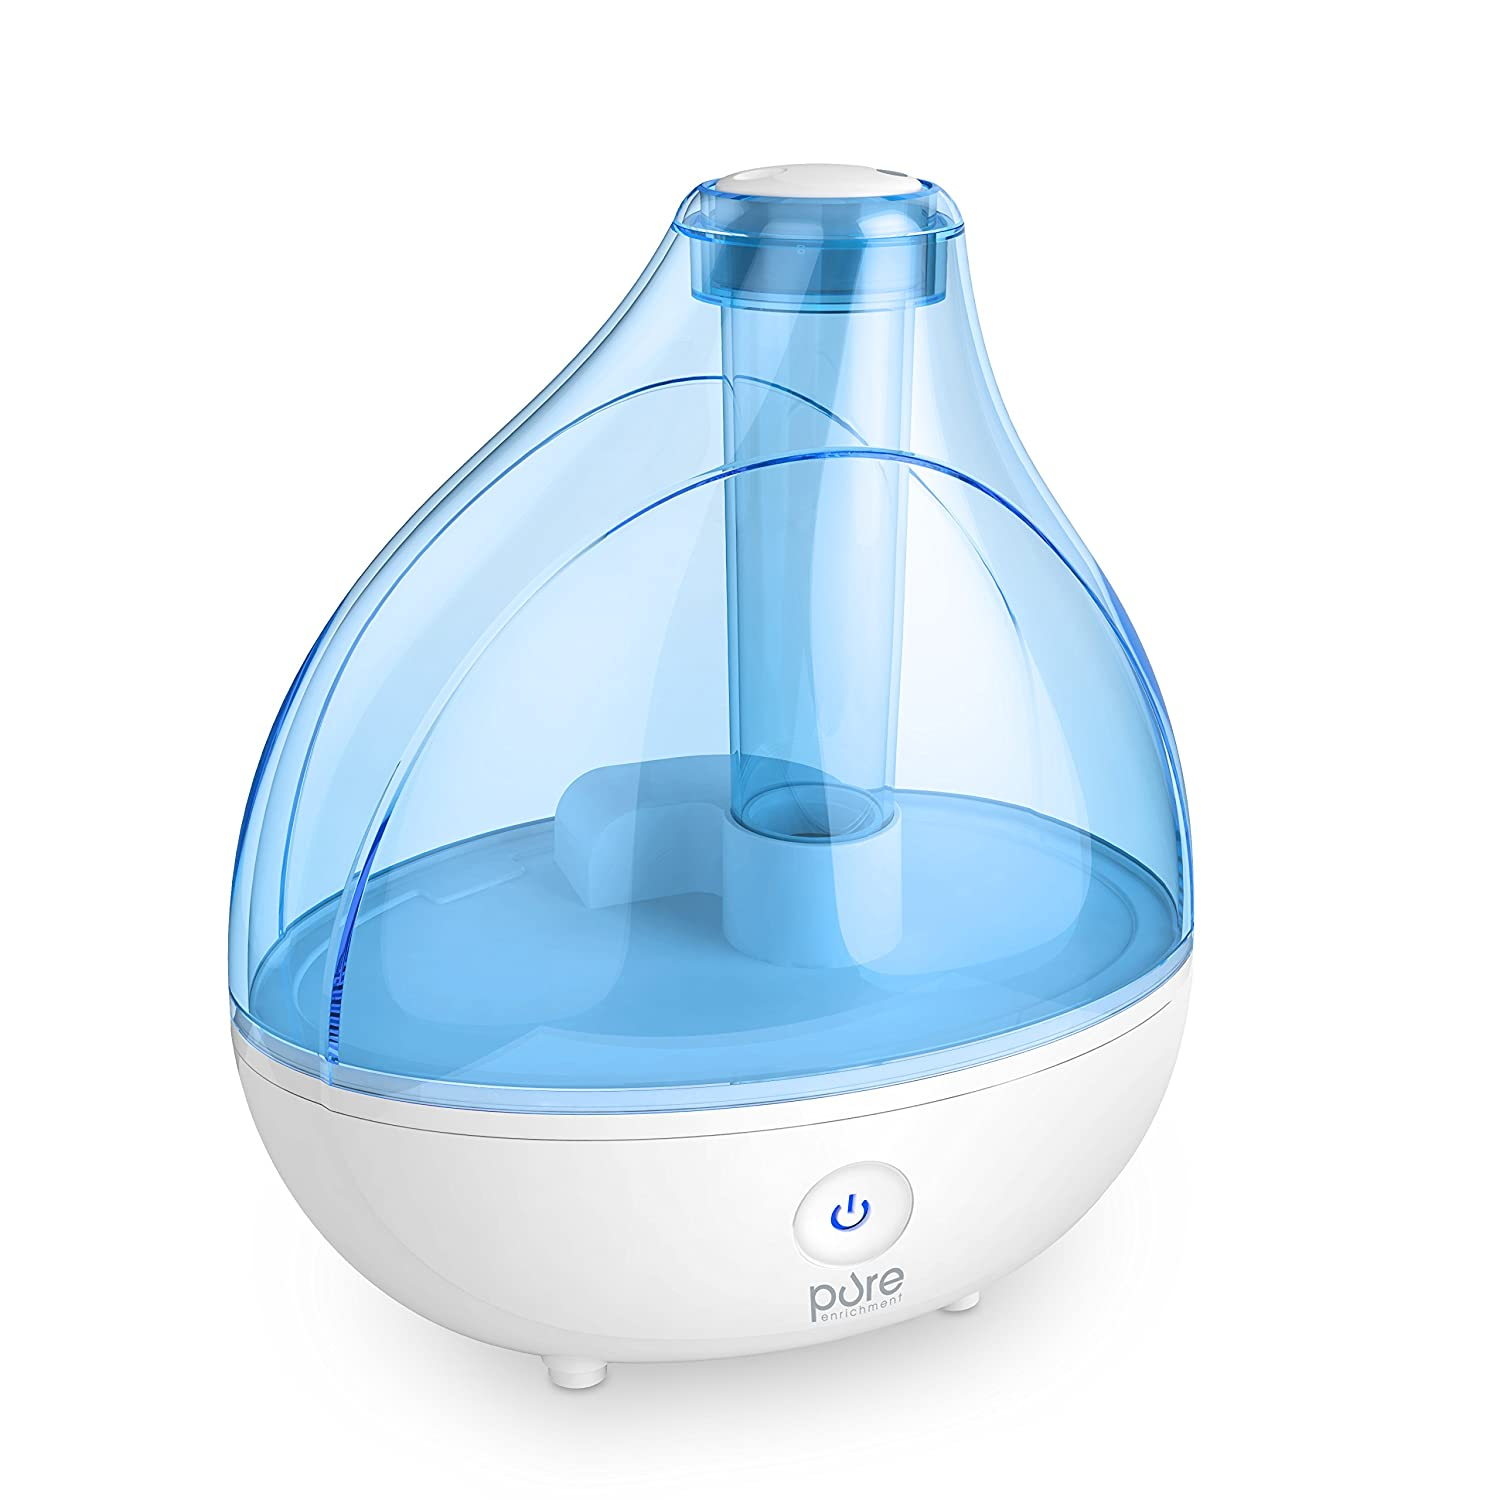 Best humidifier for baby - Ultrasonic Cool Mist Humidifier Review